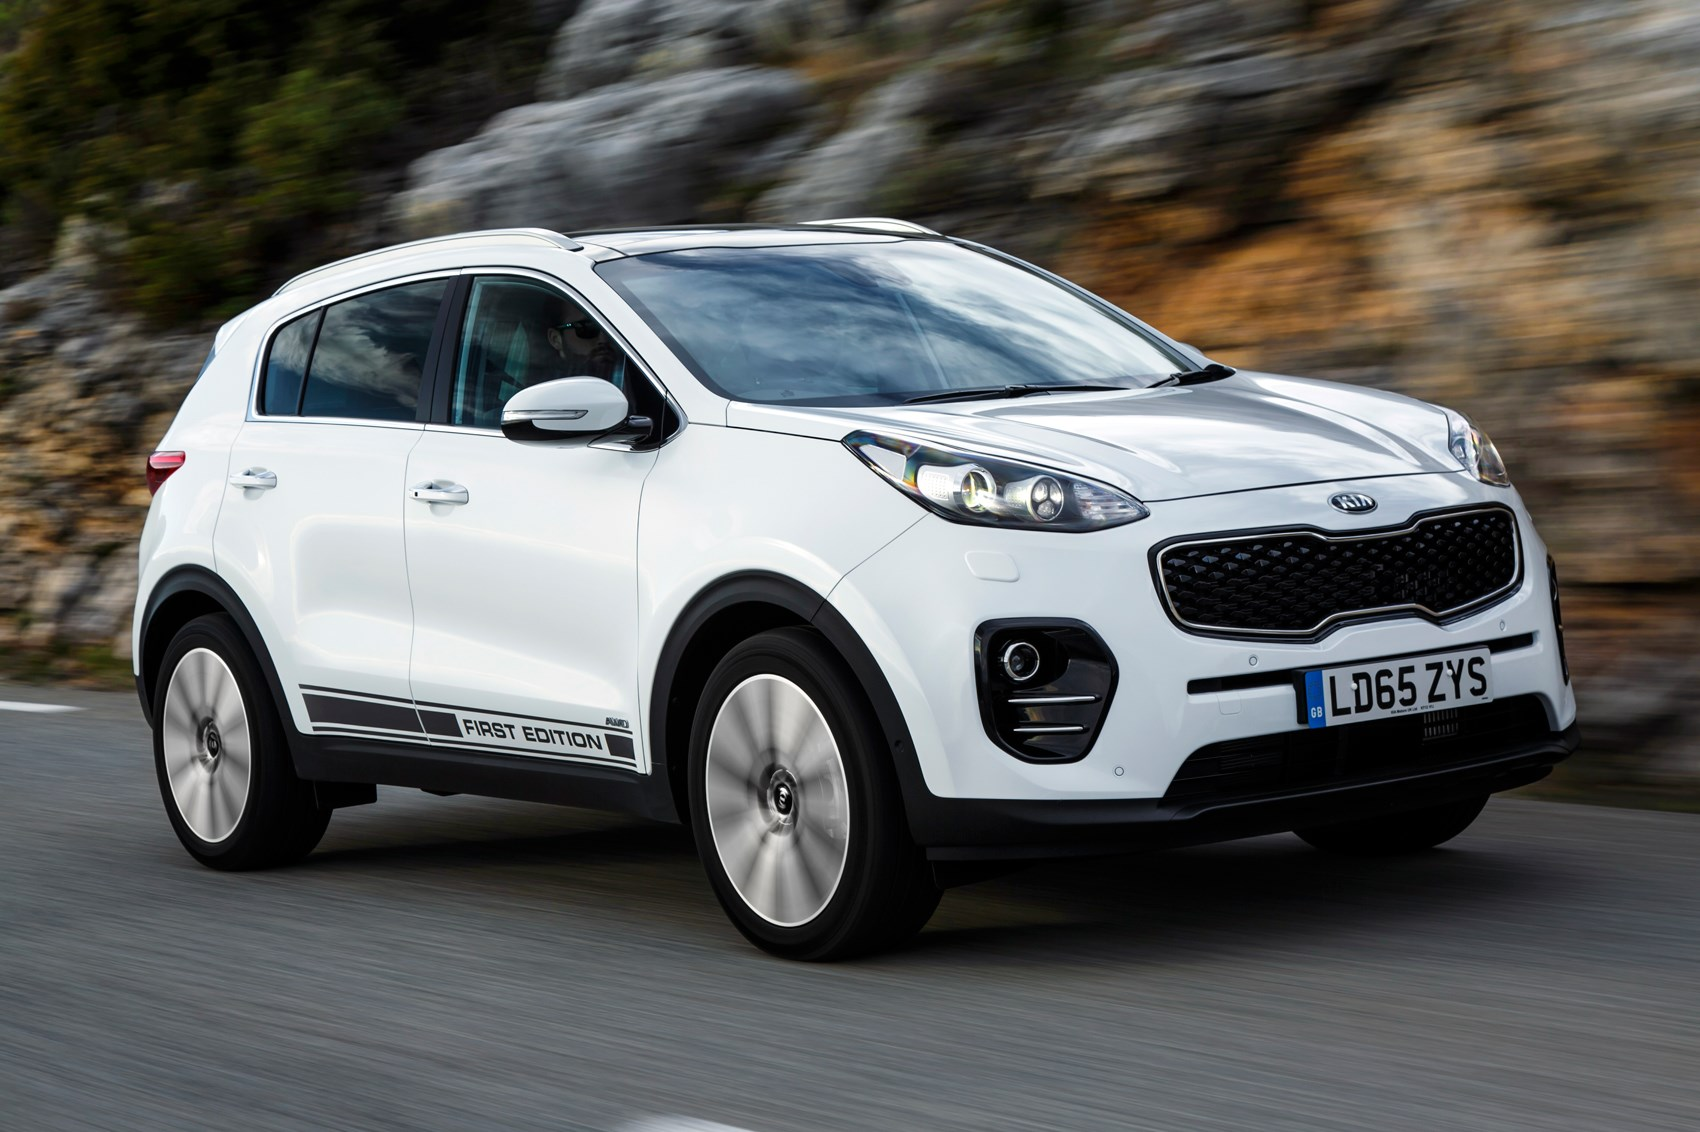 Kia Sportage First Edition 2 0 Crdi 2016 Review By Car